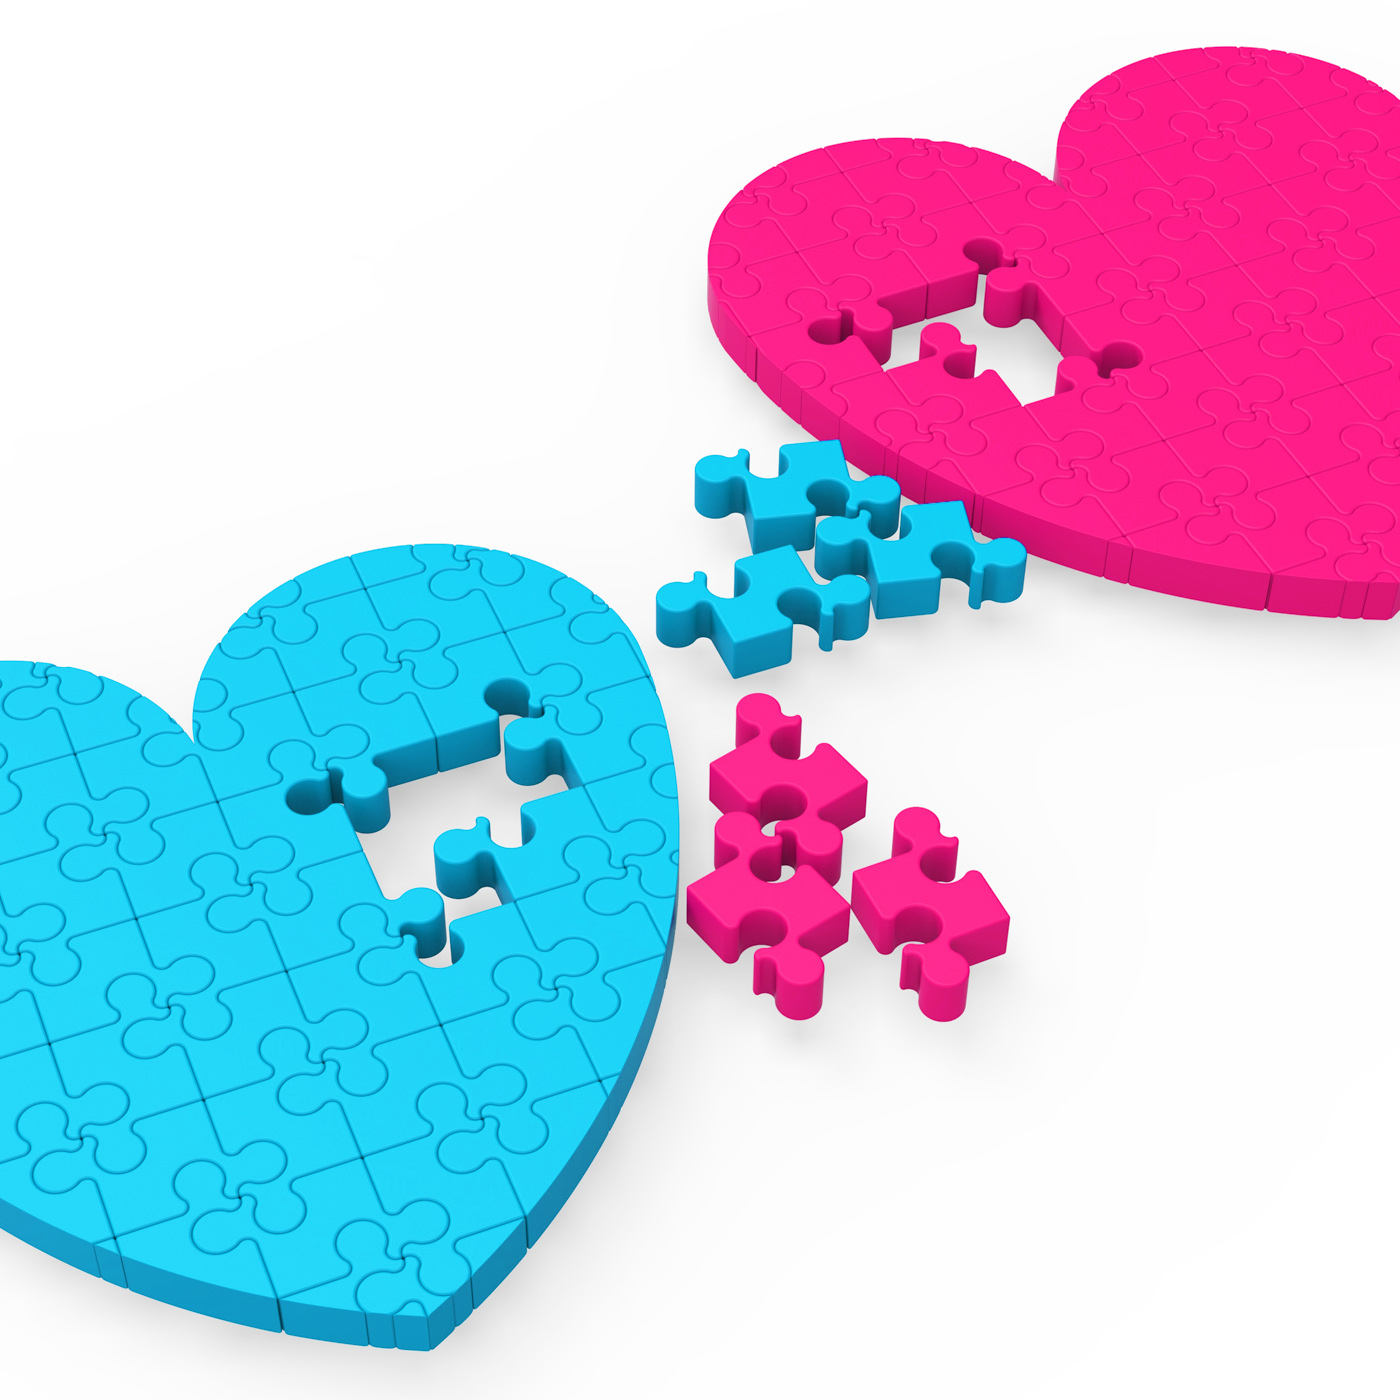 Two 3d hearts showing romantic gestures photo